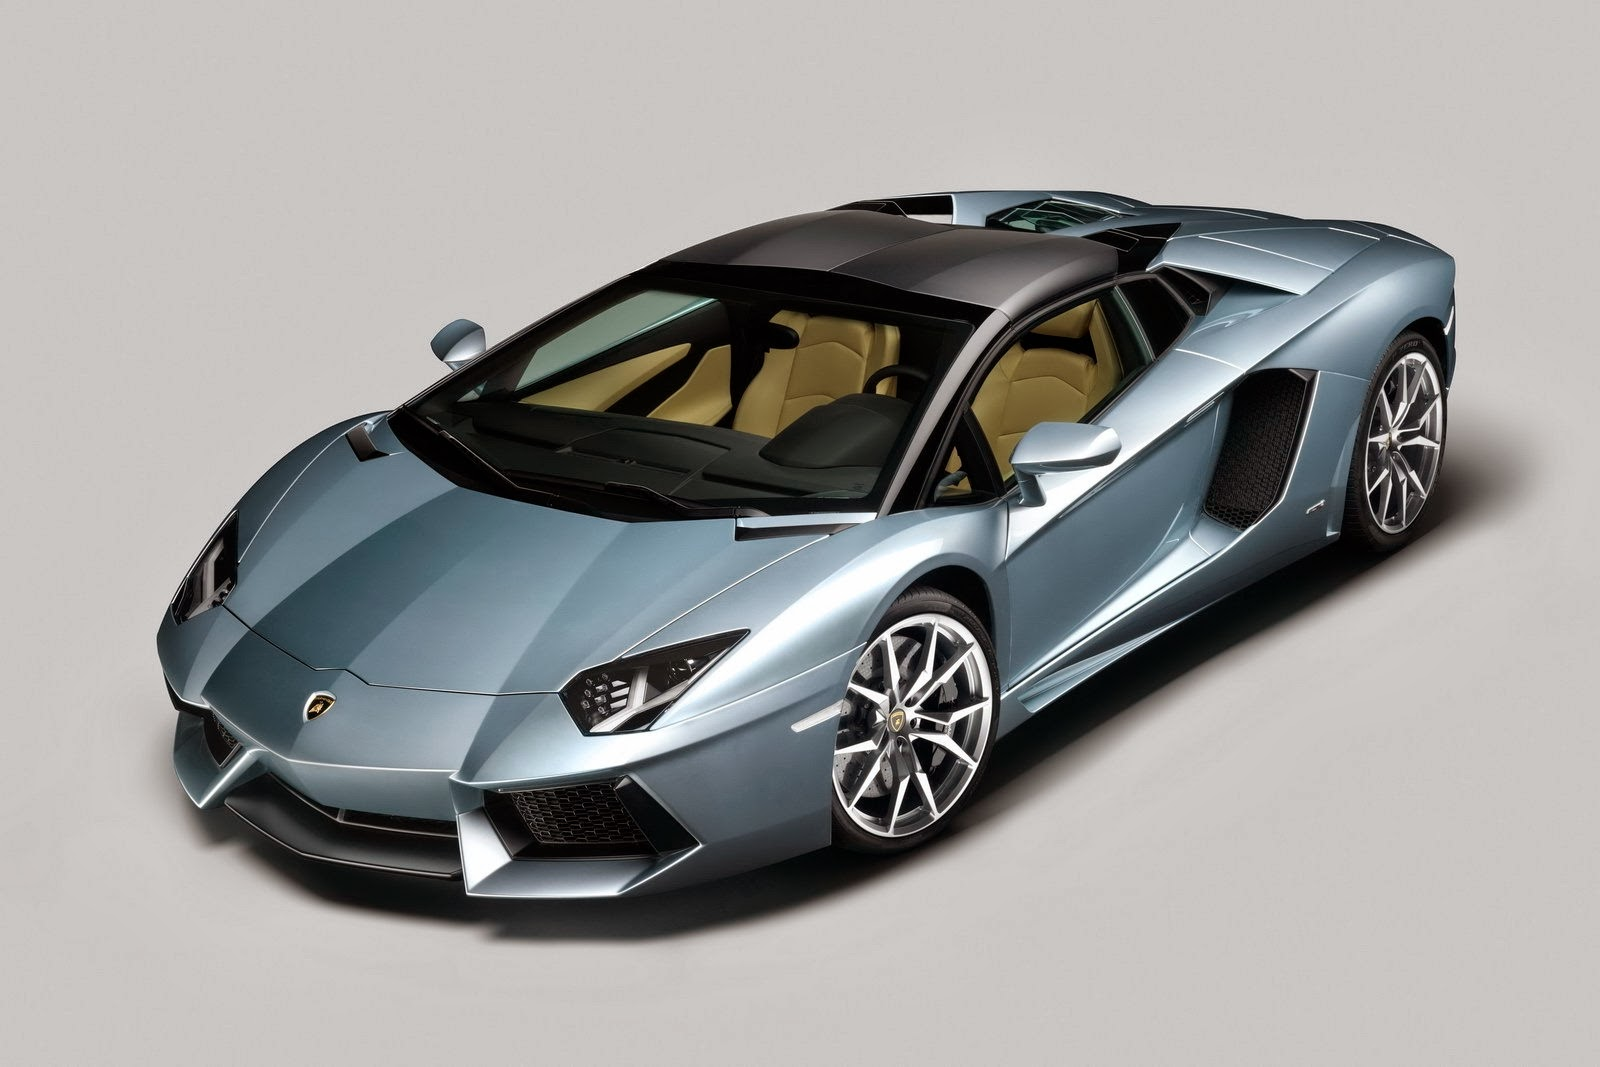 Lamborghini Car Price List November 2013